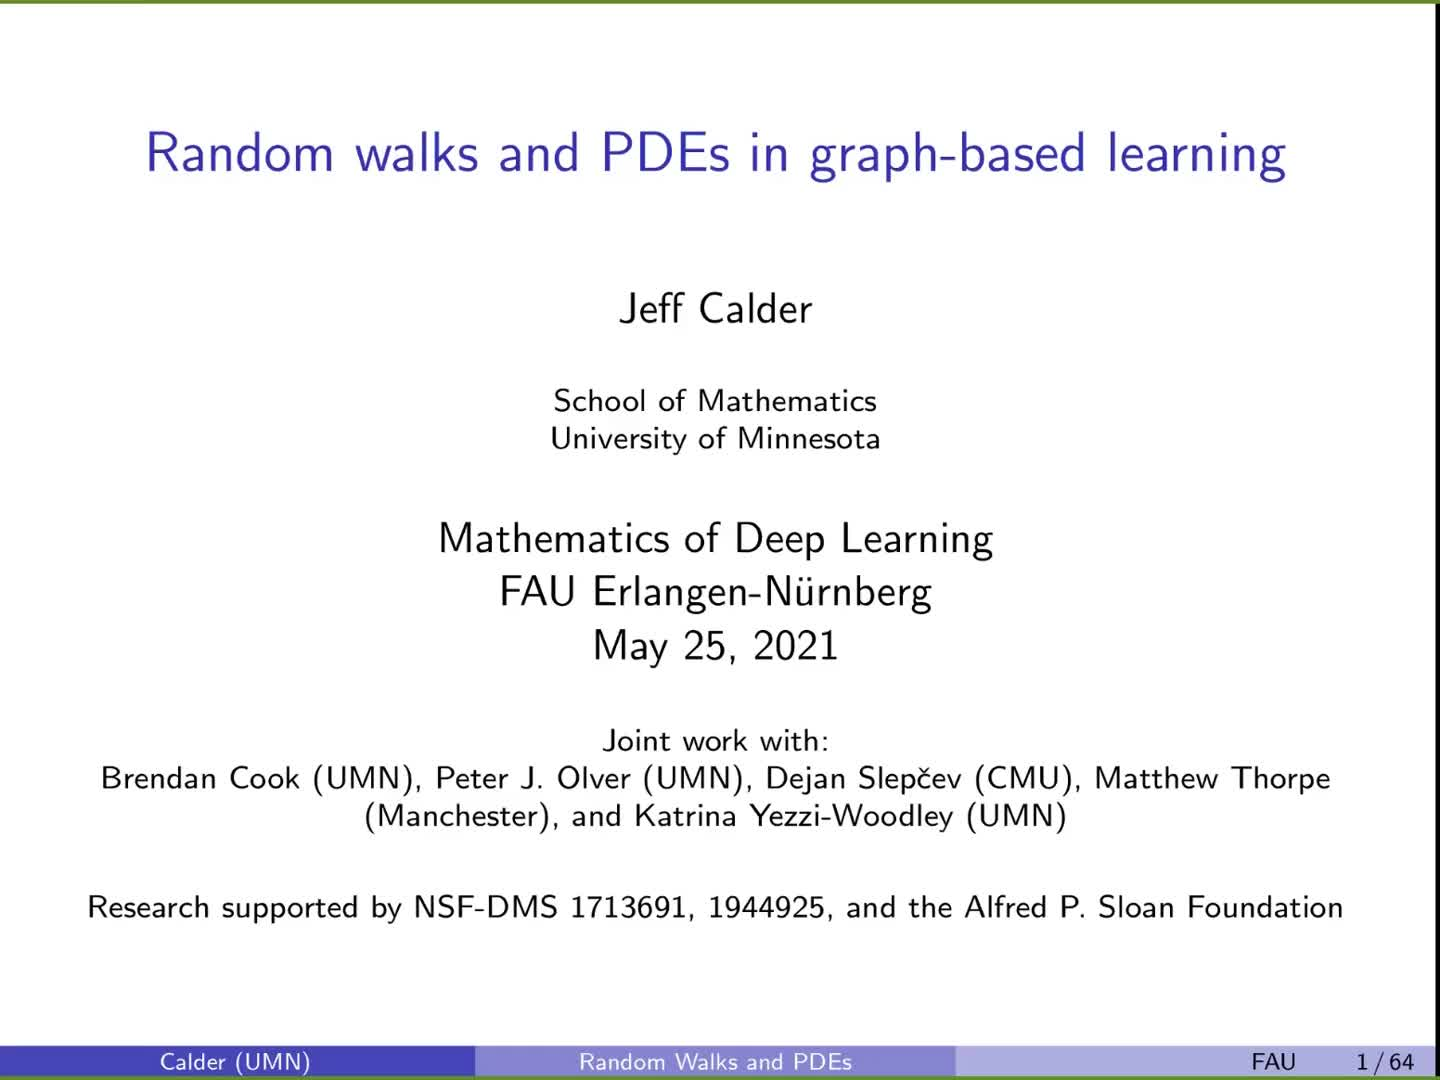 Random walks and PDEs in graph-based learning preview image